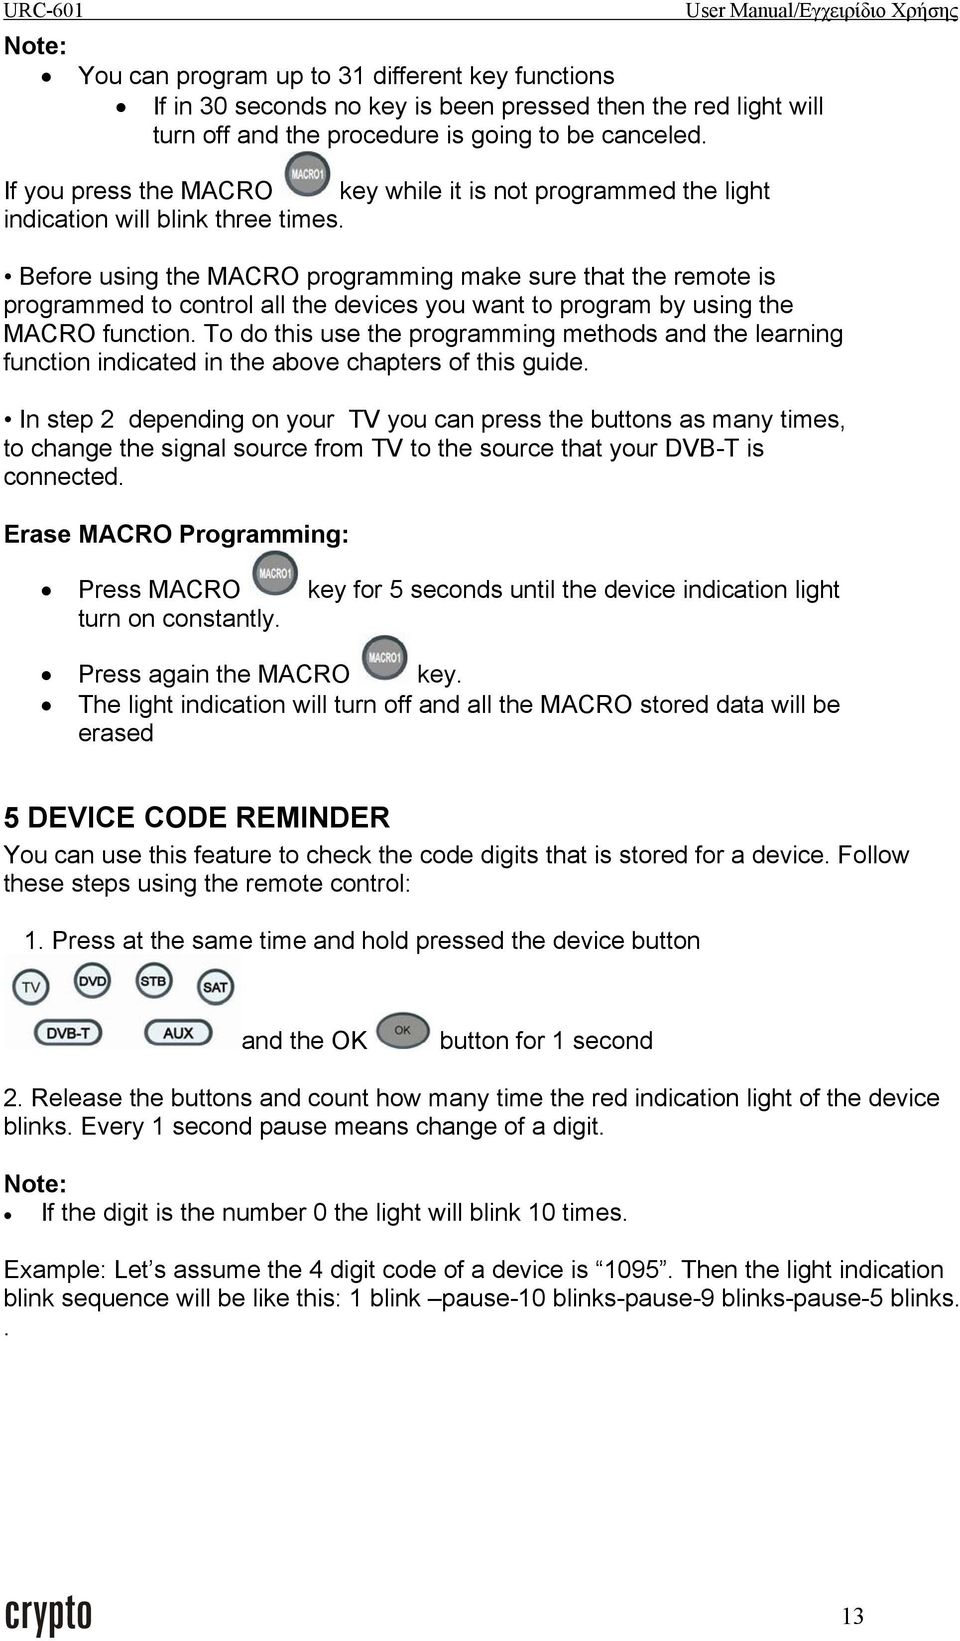 Before using the MACRO programming make sure that the remote is programmed to control all the devices you want to program by using the MACRO function.